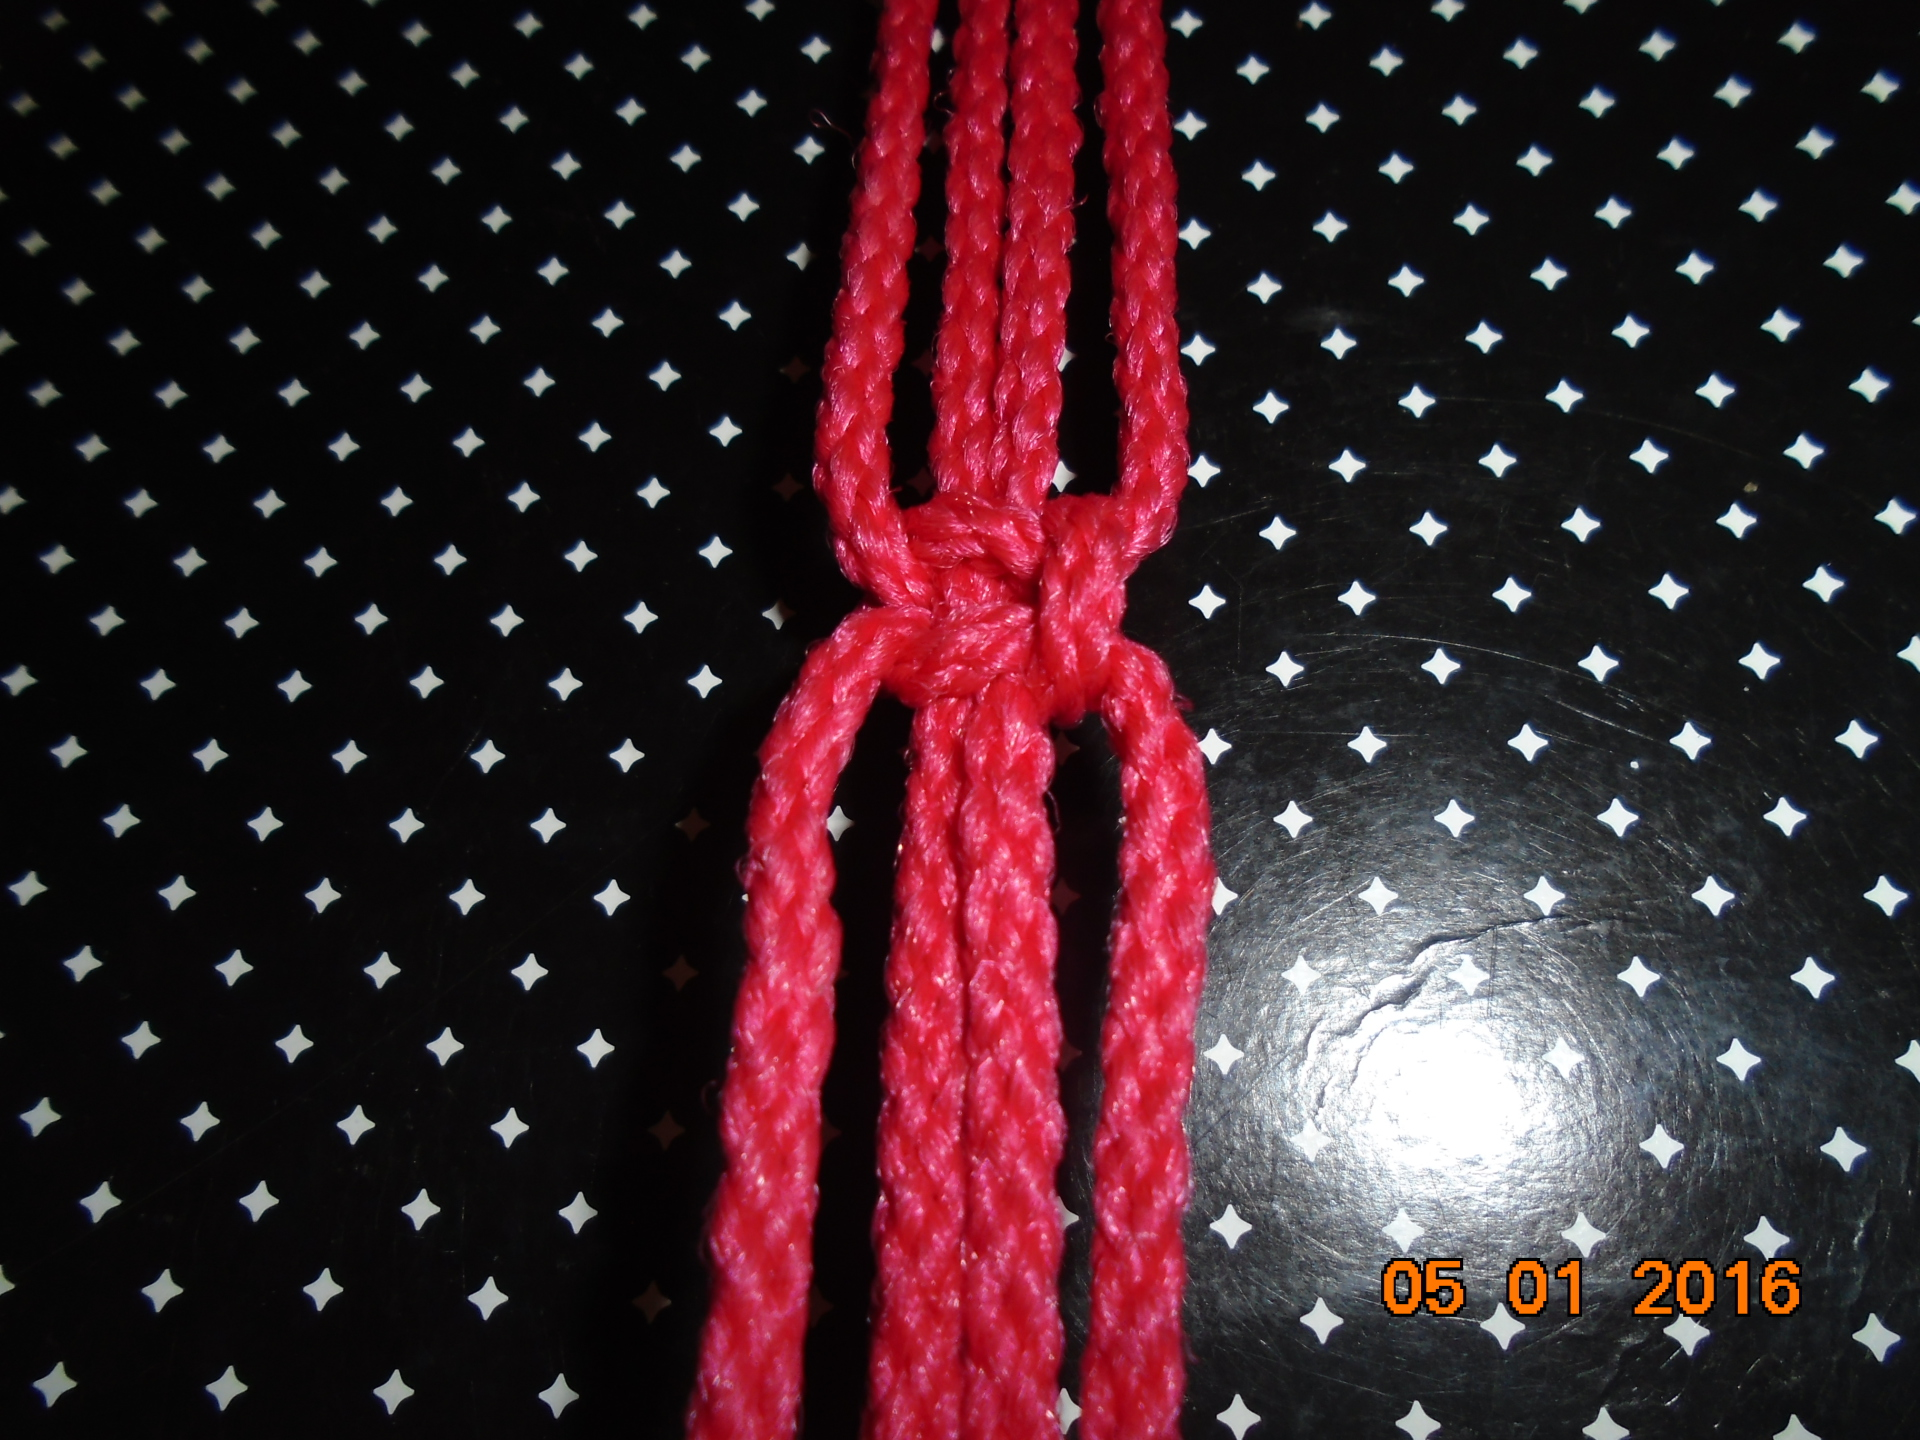 Square Knots (left square knot, right square knot, Alternating square knot)